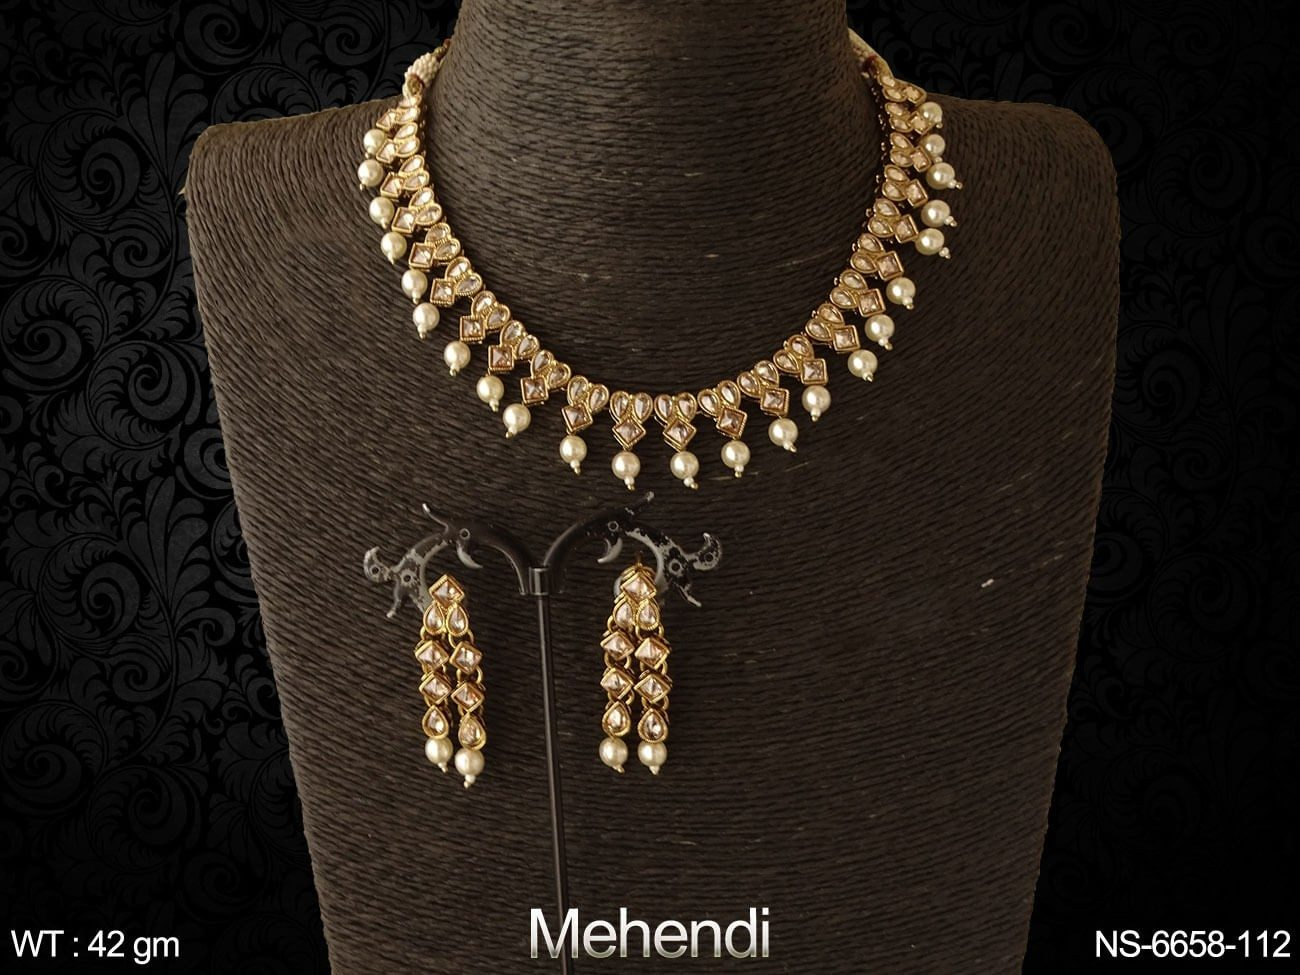 Princess with paan delicate full stone polki necklace set